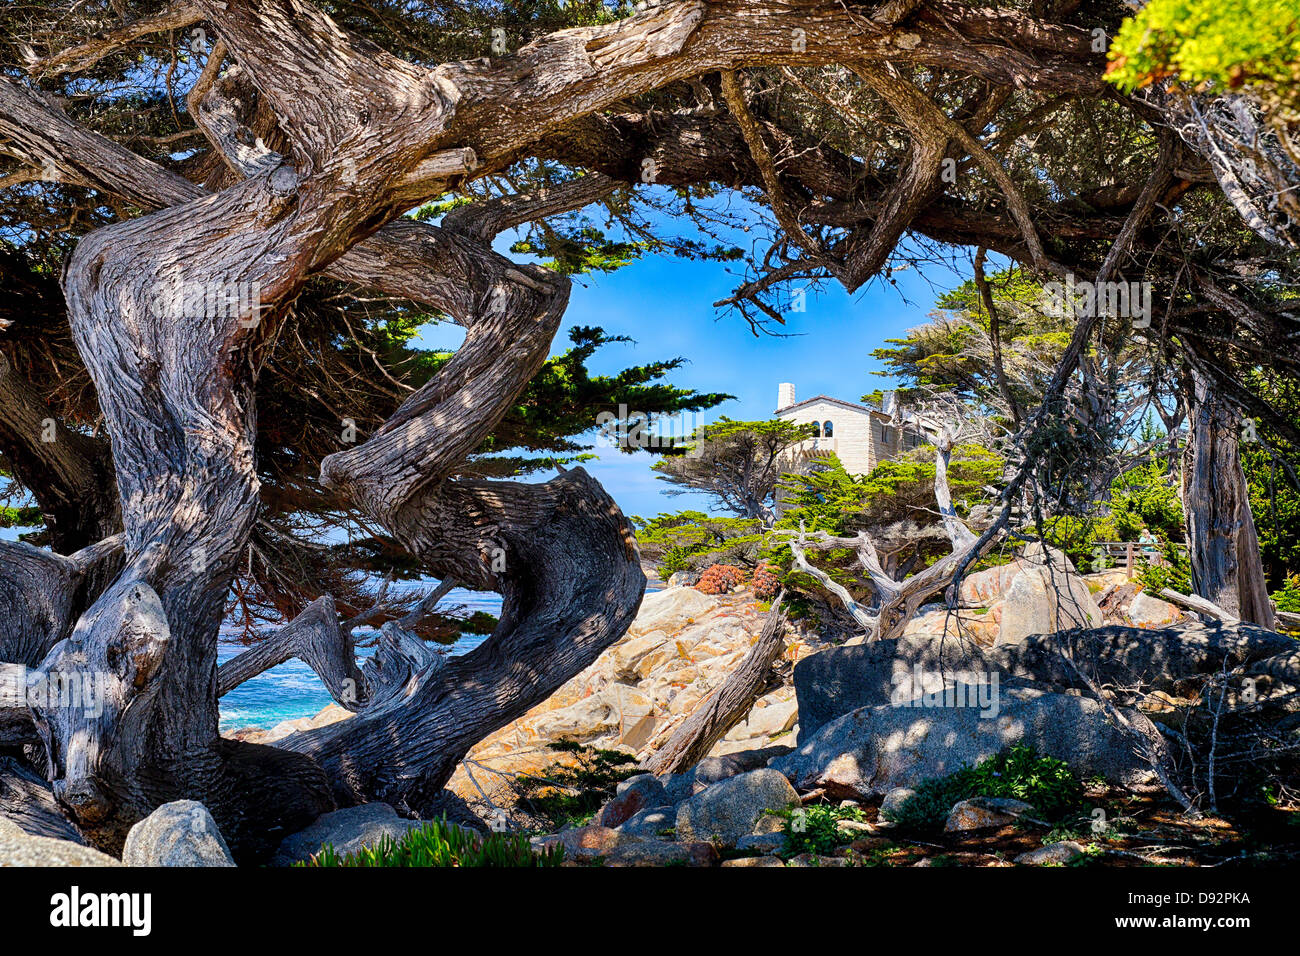 Twisted Cypress Trees at Pescadero Point, Pebble Beach, Monterey County, California - Stock Image